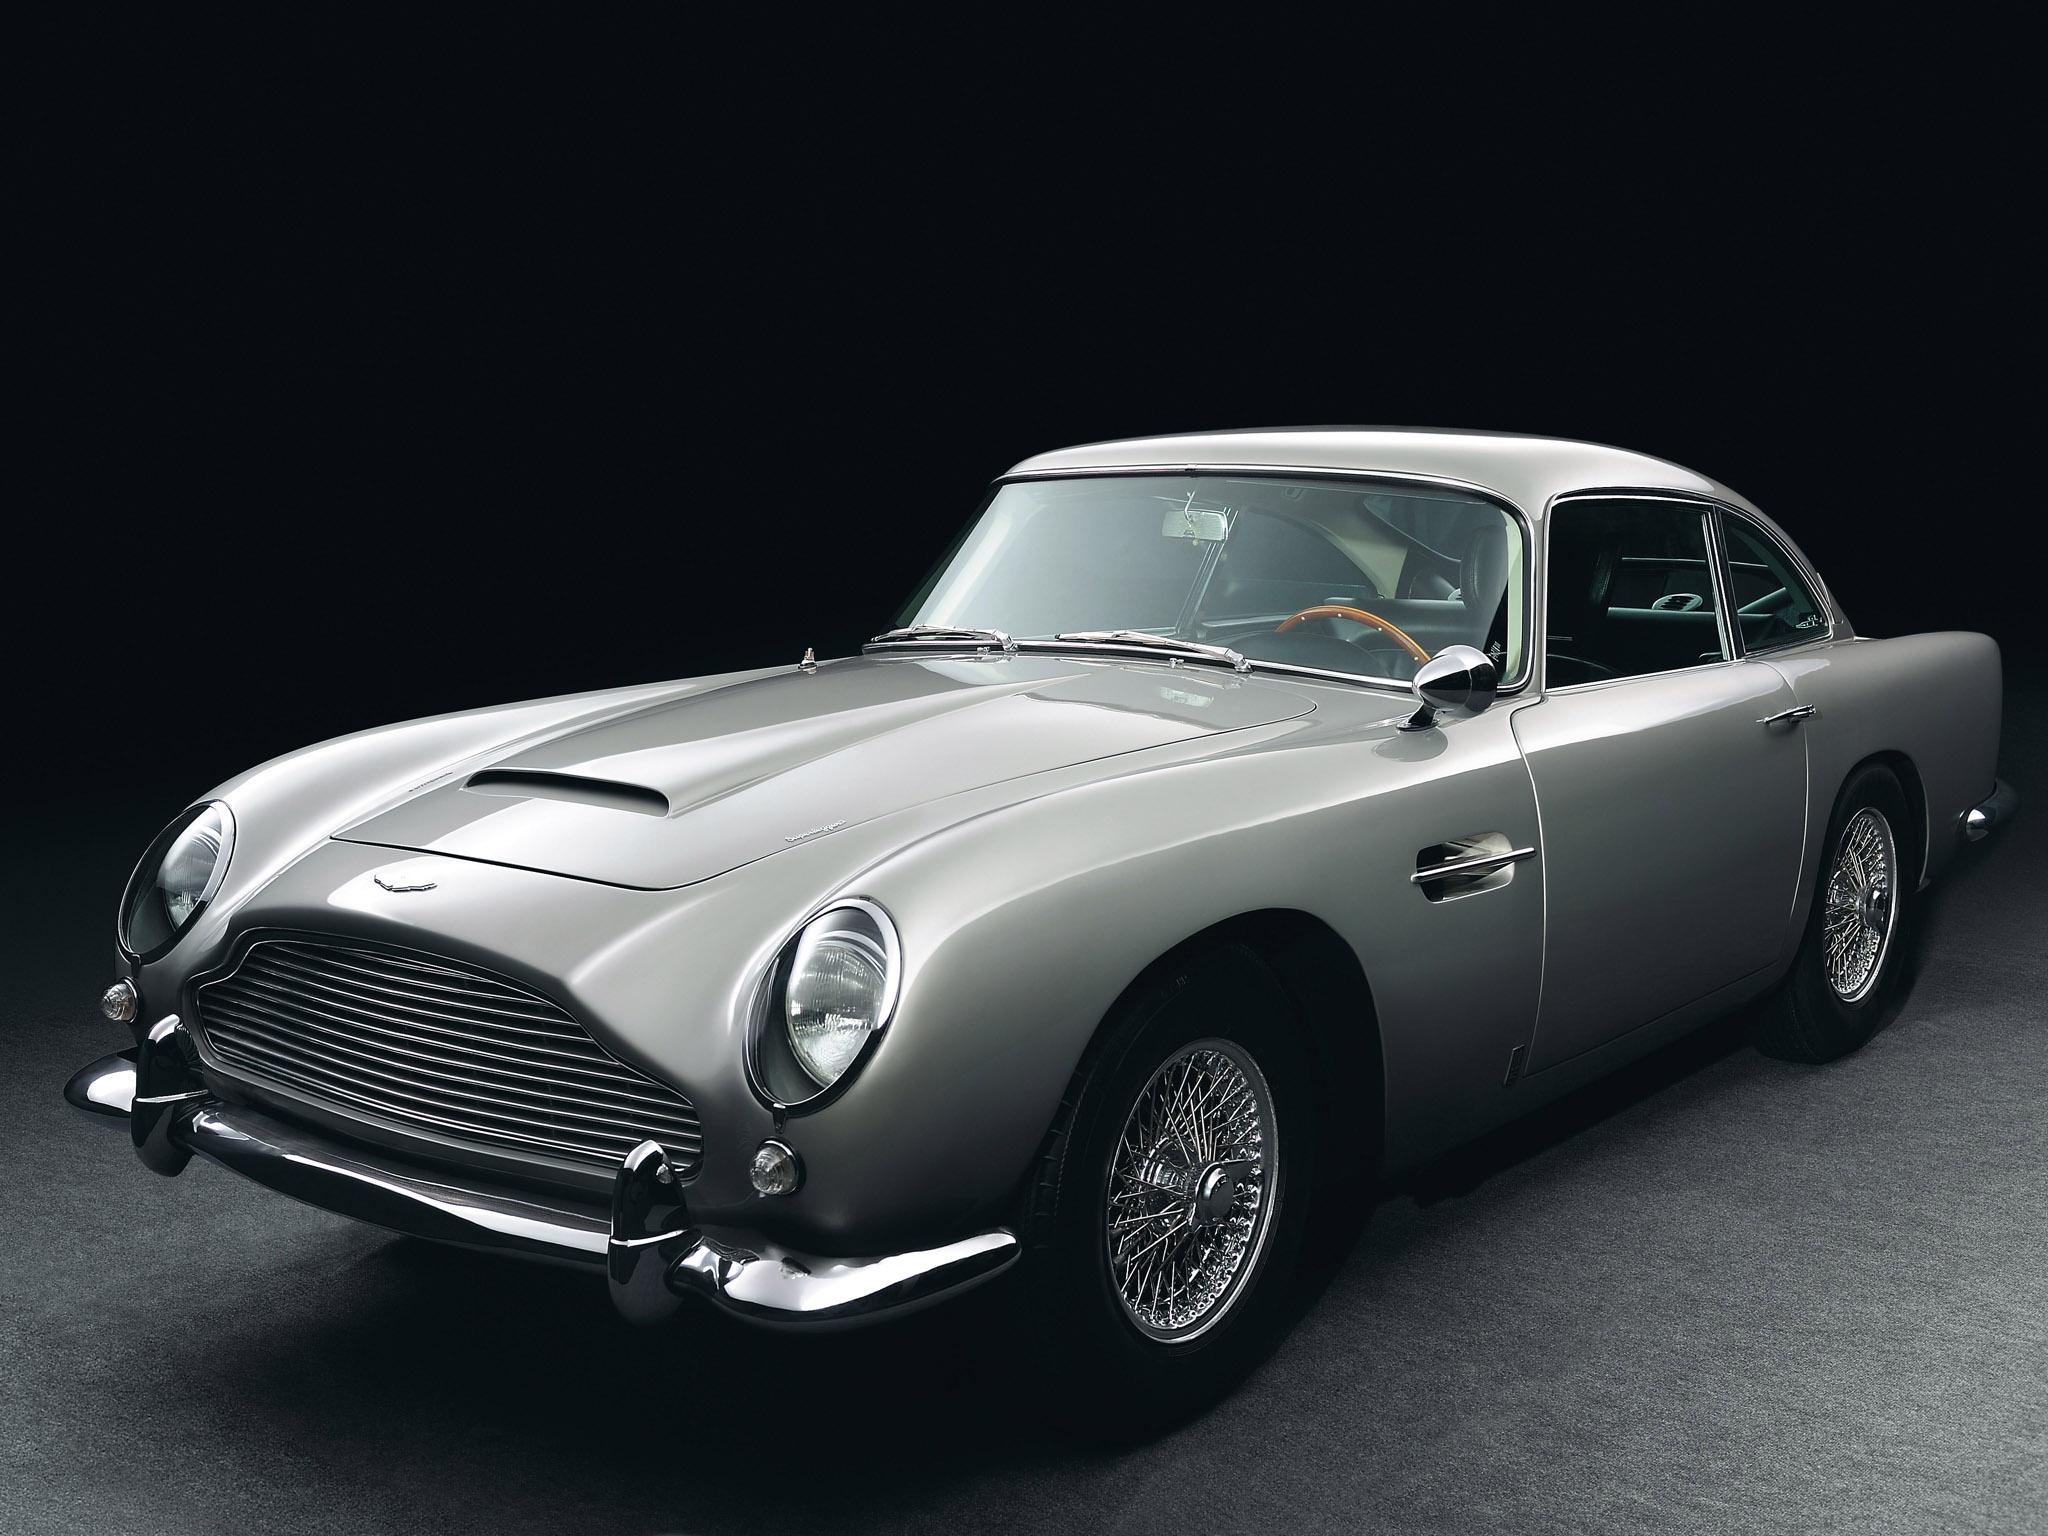 1965 aston martin db5 classic wallpaper 2048x1536 141143 wallpaperup. Black Bedroom Furniture Sets. Home Design Ideas